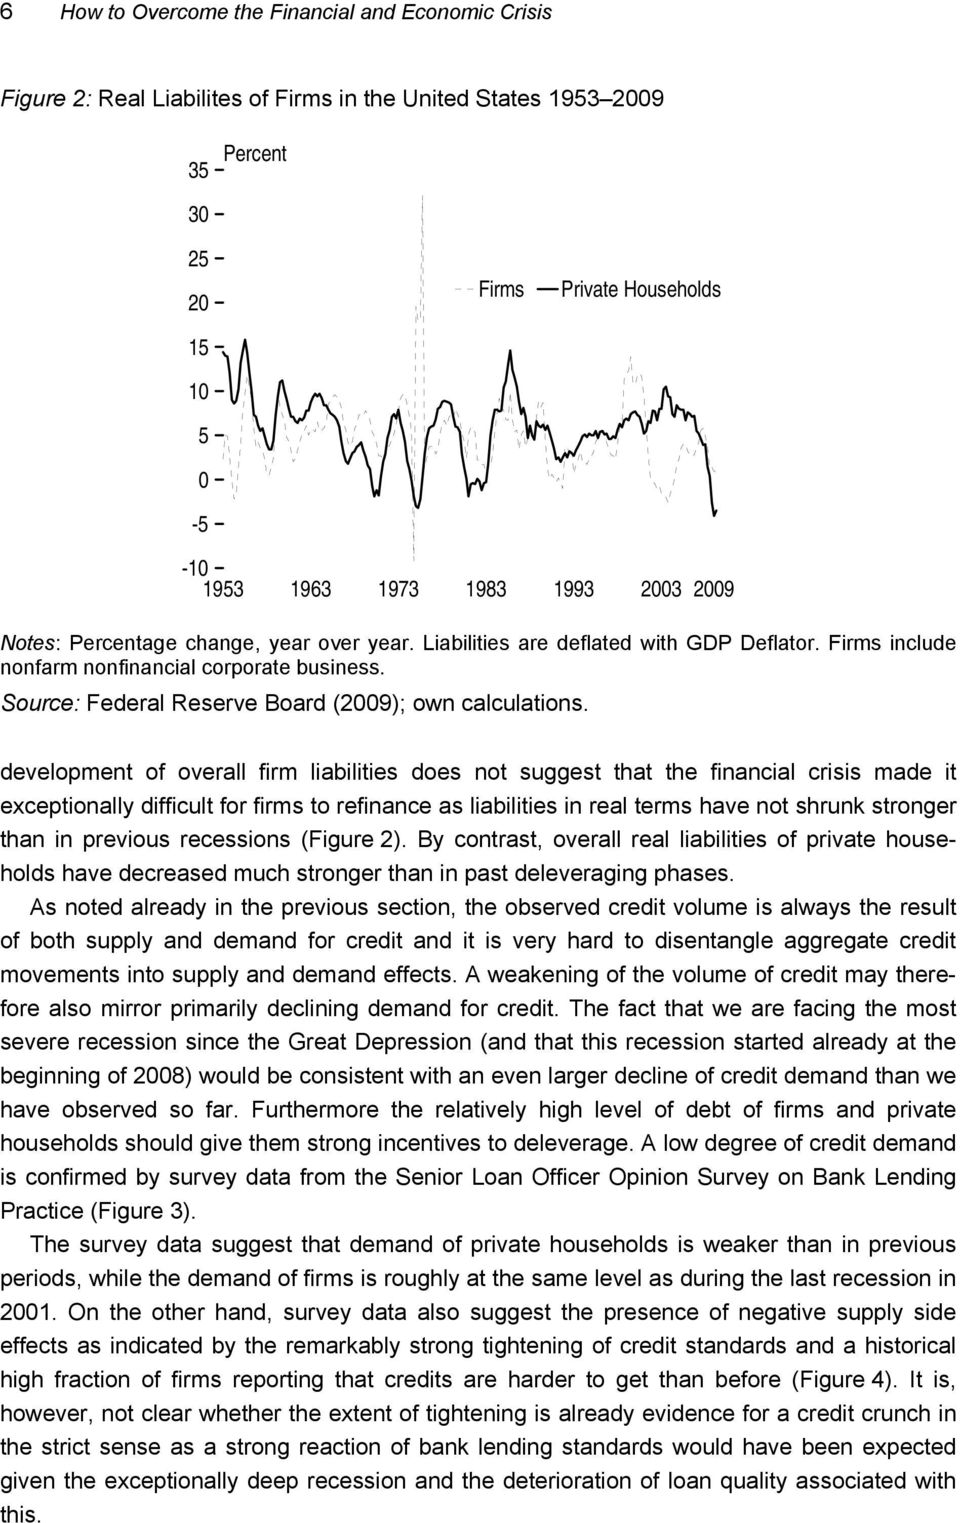 Source: Federal Reserve Board (2009); own calculations.